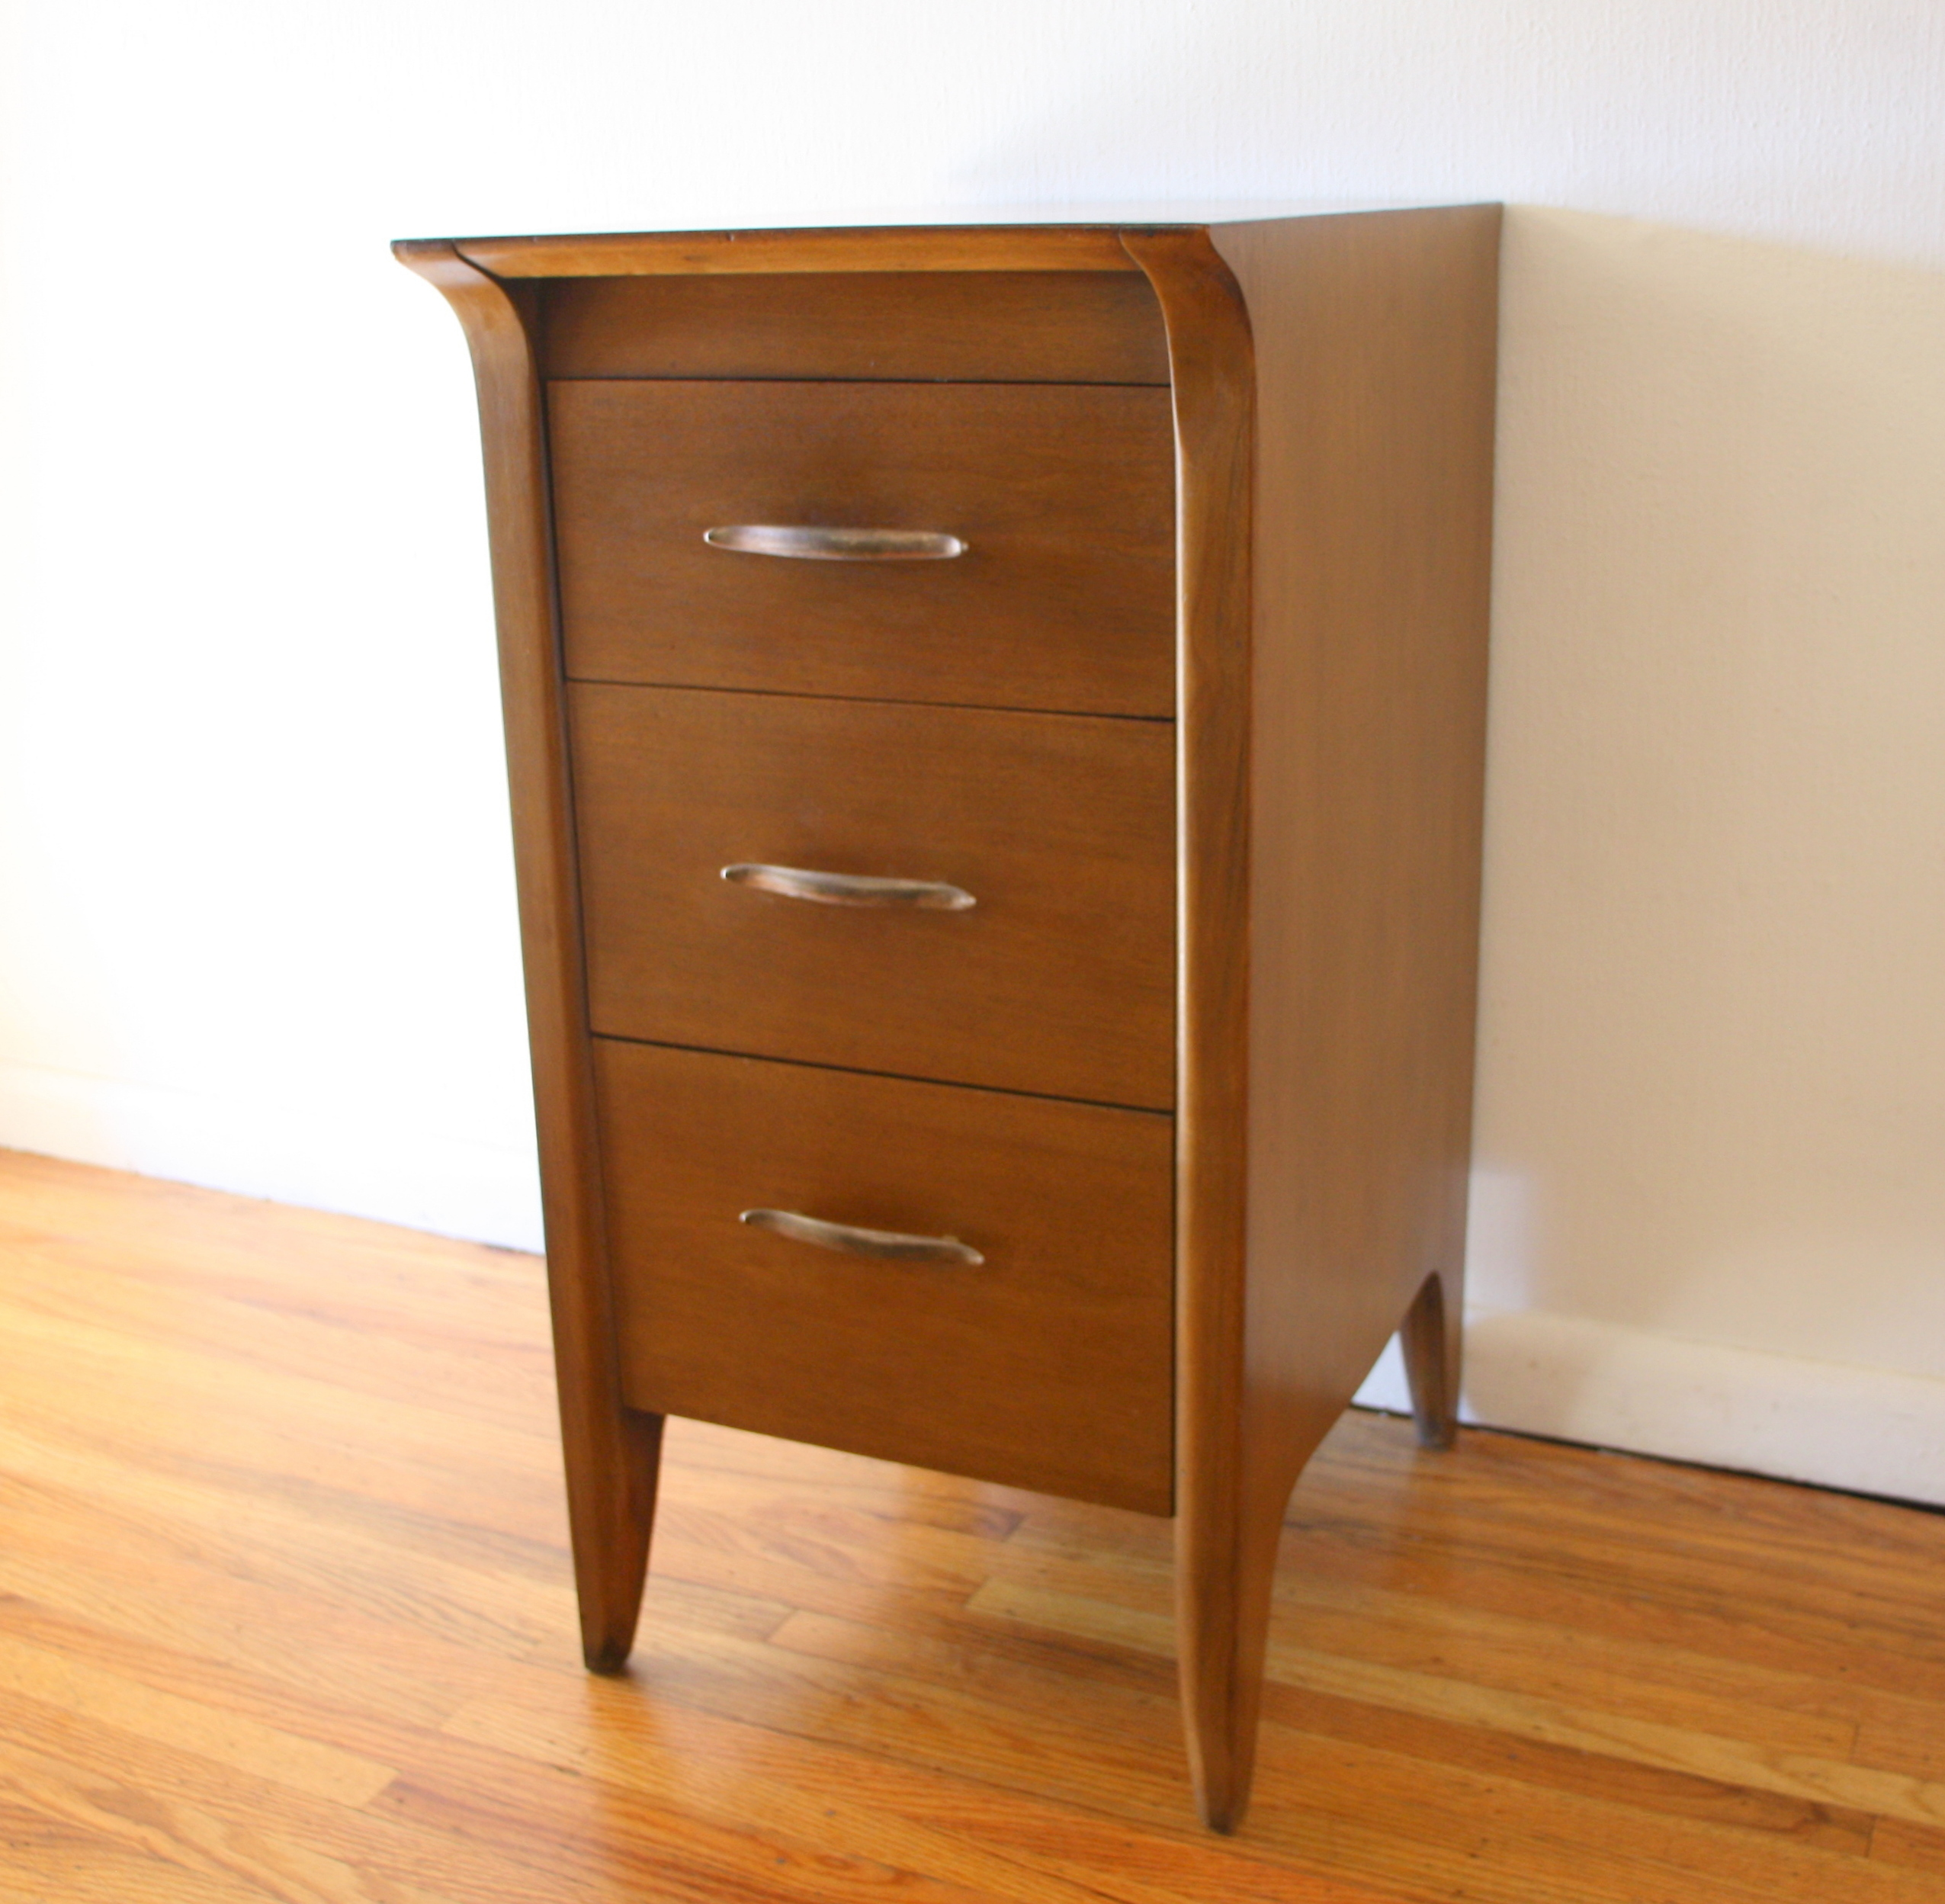 Drexel Profile side end table nightstand 1